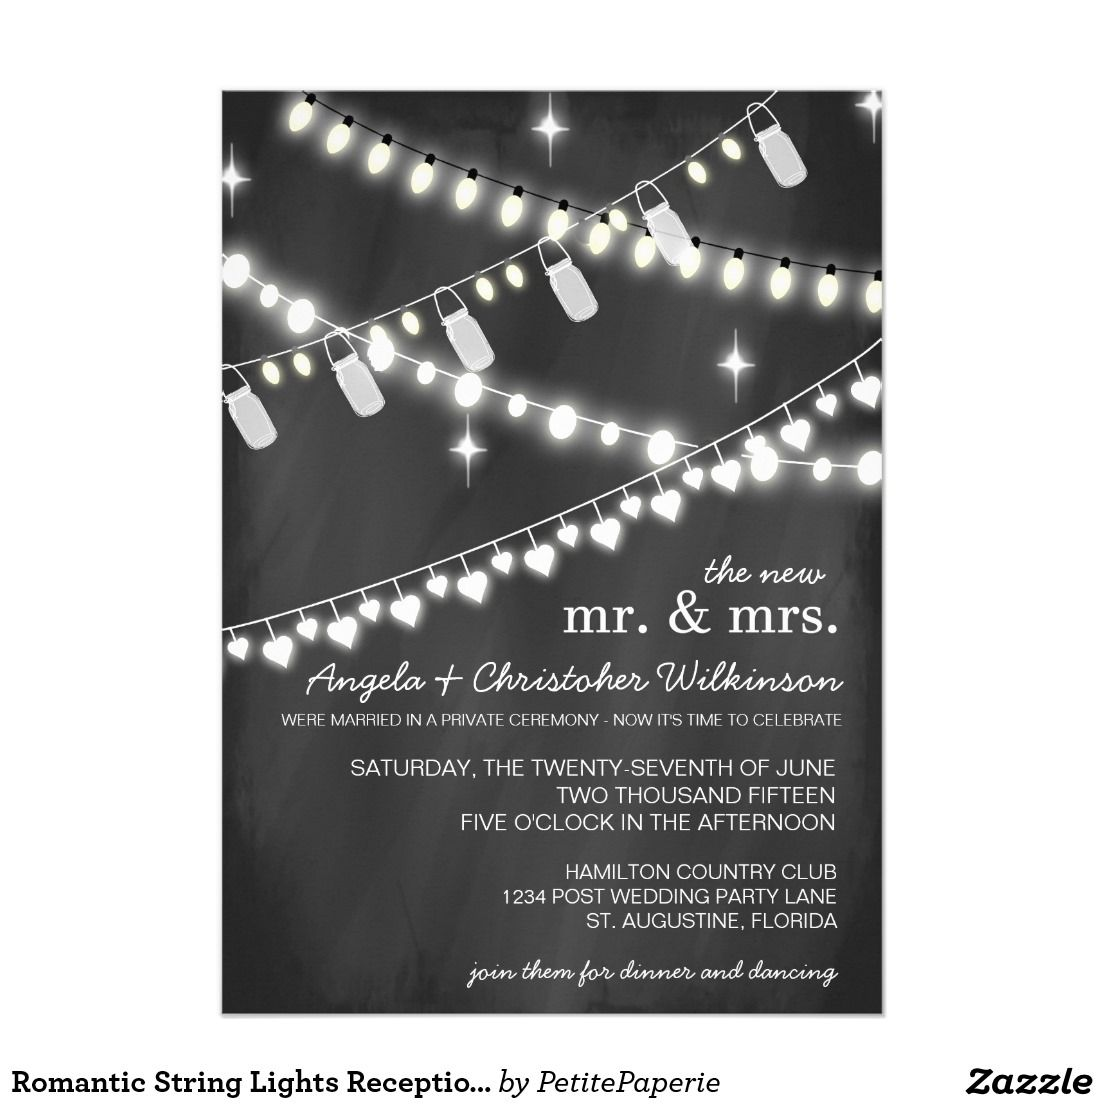 Wedding Reception Invitation Wording Funny: Romantic String Lights Reception Only Invitation